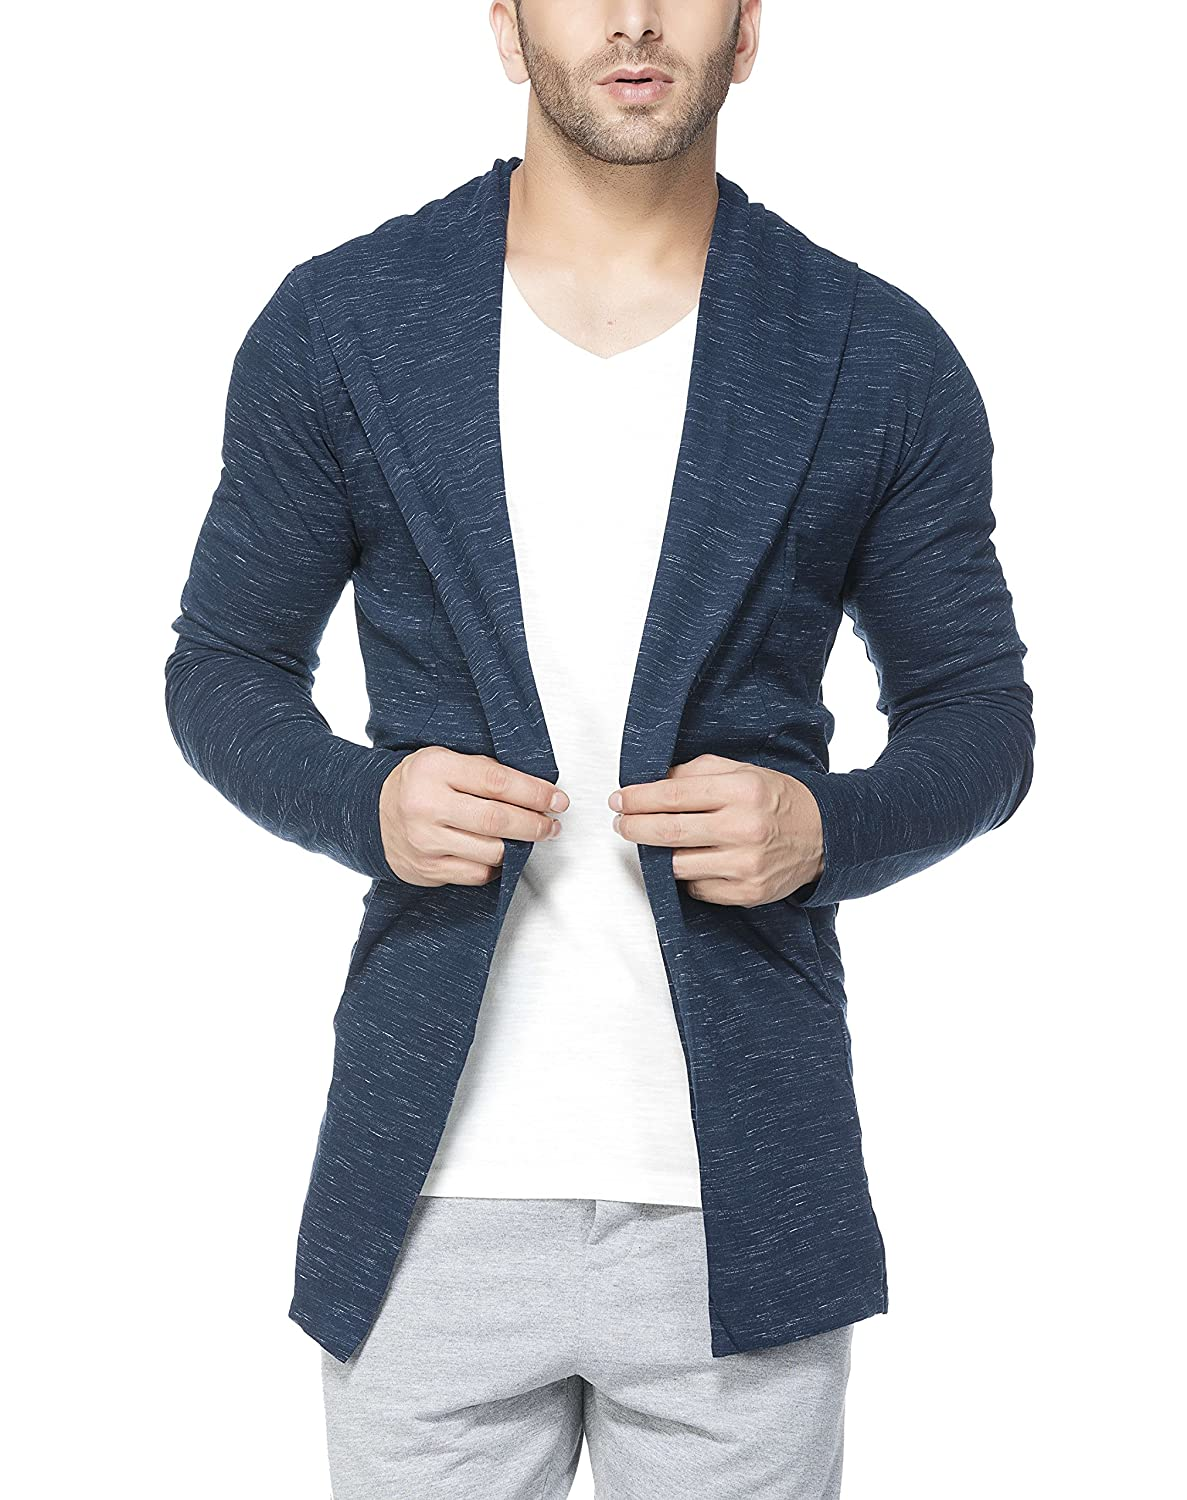 Tinted Men's Cotton Blend Hooded Cardigan TJ5407